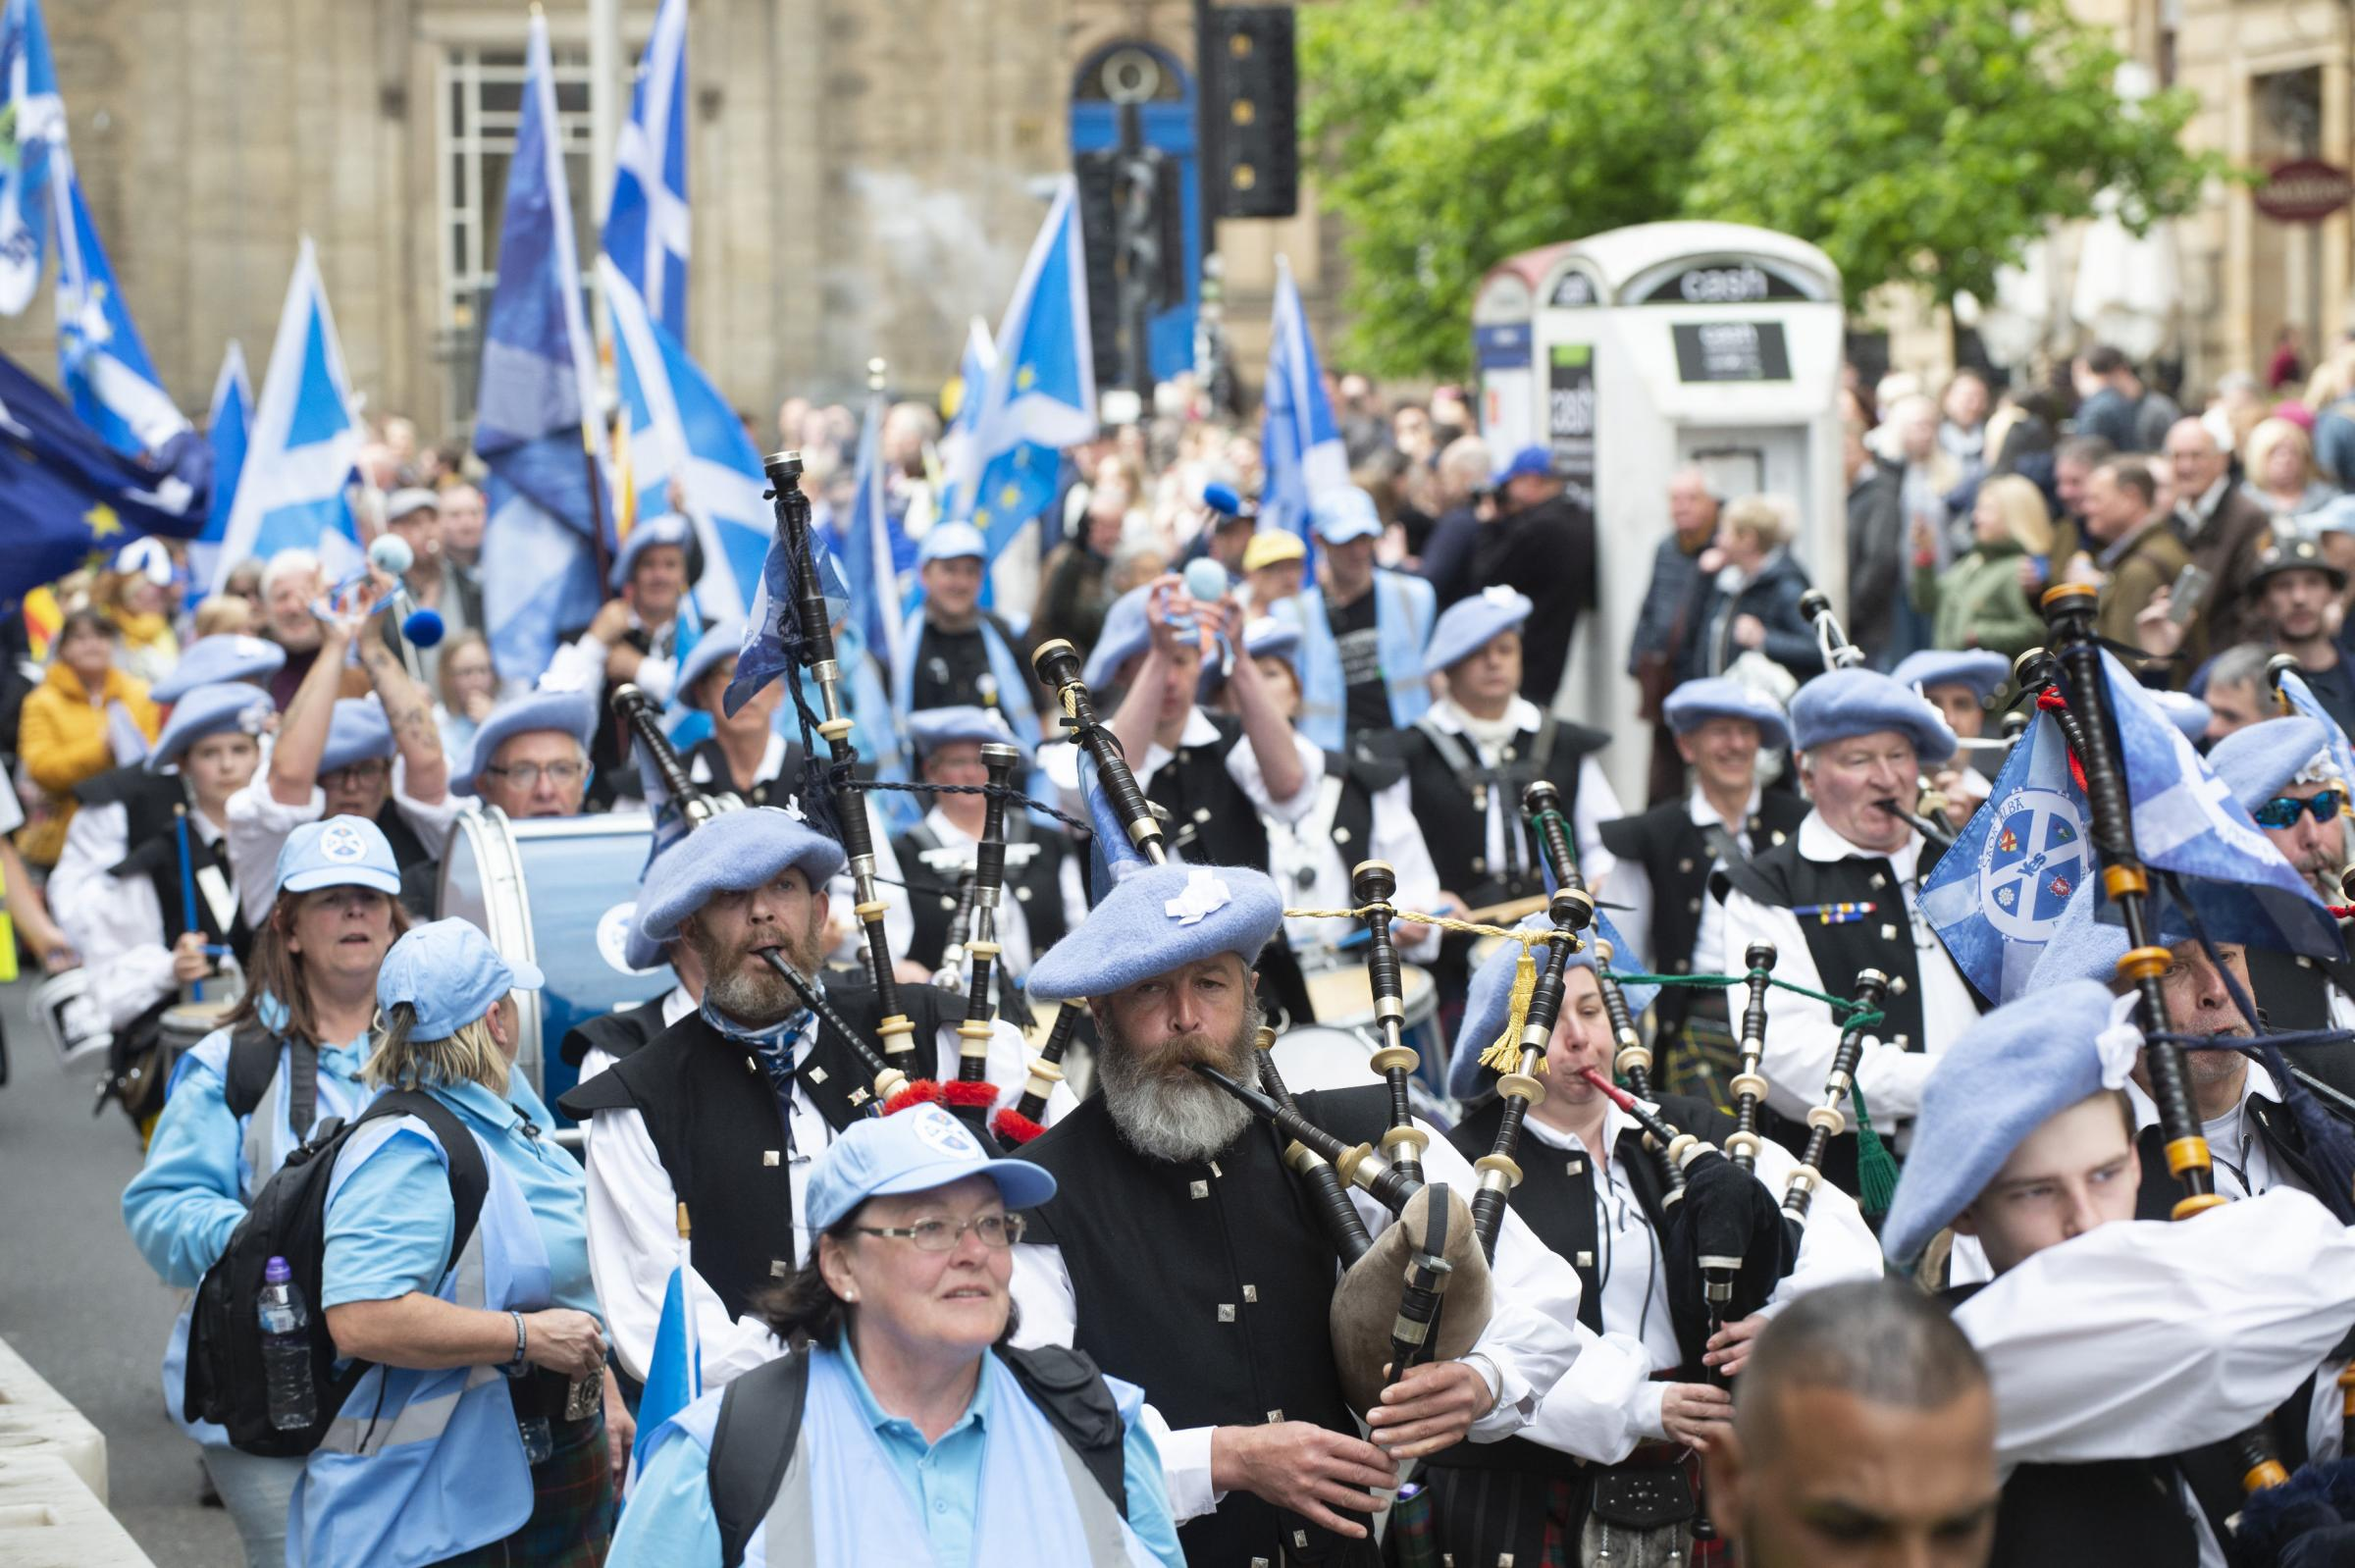 Soar Alba – Yes movement has new 'leadership' out front